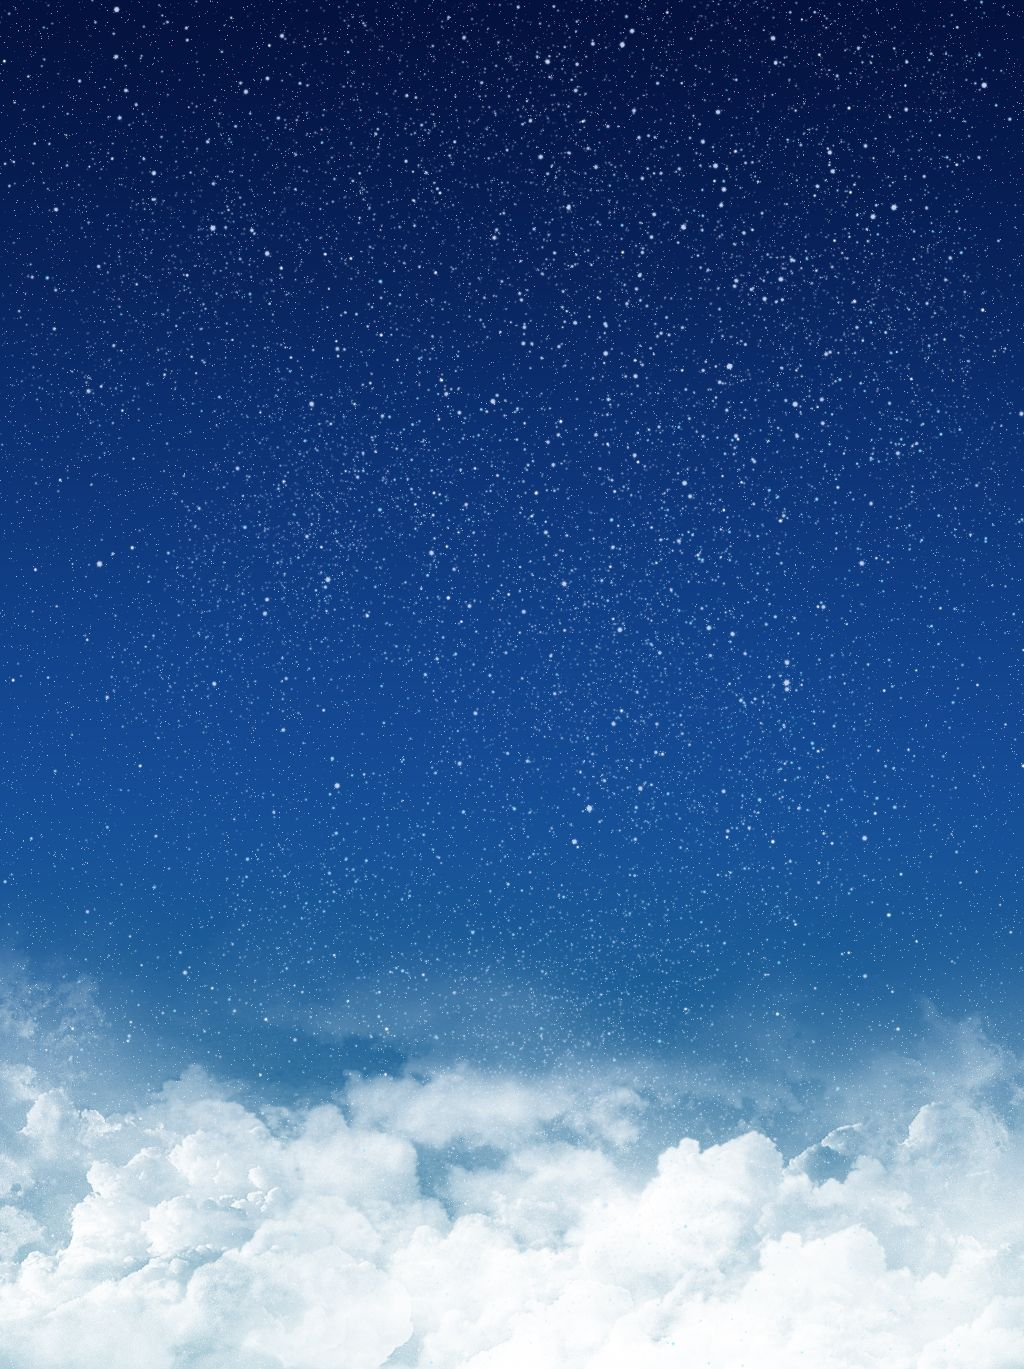 Blue Clouds Starry Sky White Dots Poster Background Blue Sky Clouds Blue Sky Background Blue Clouds